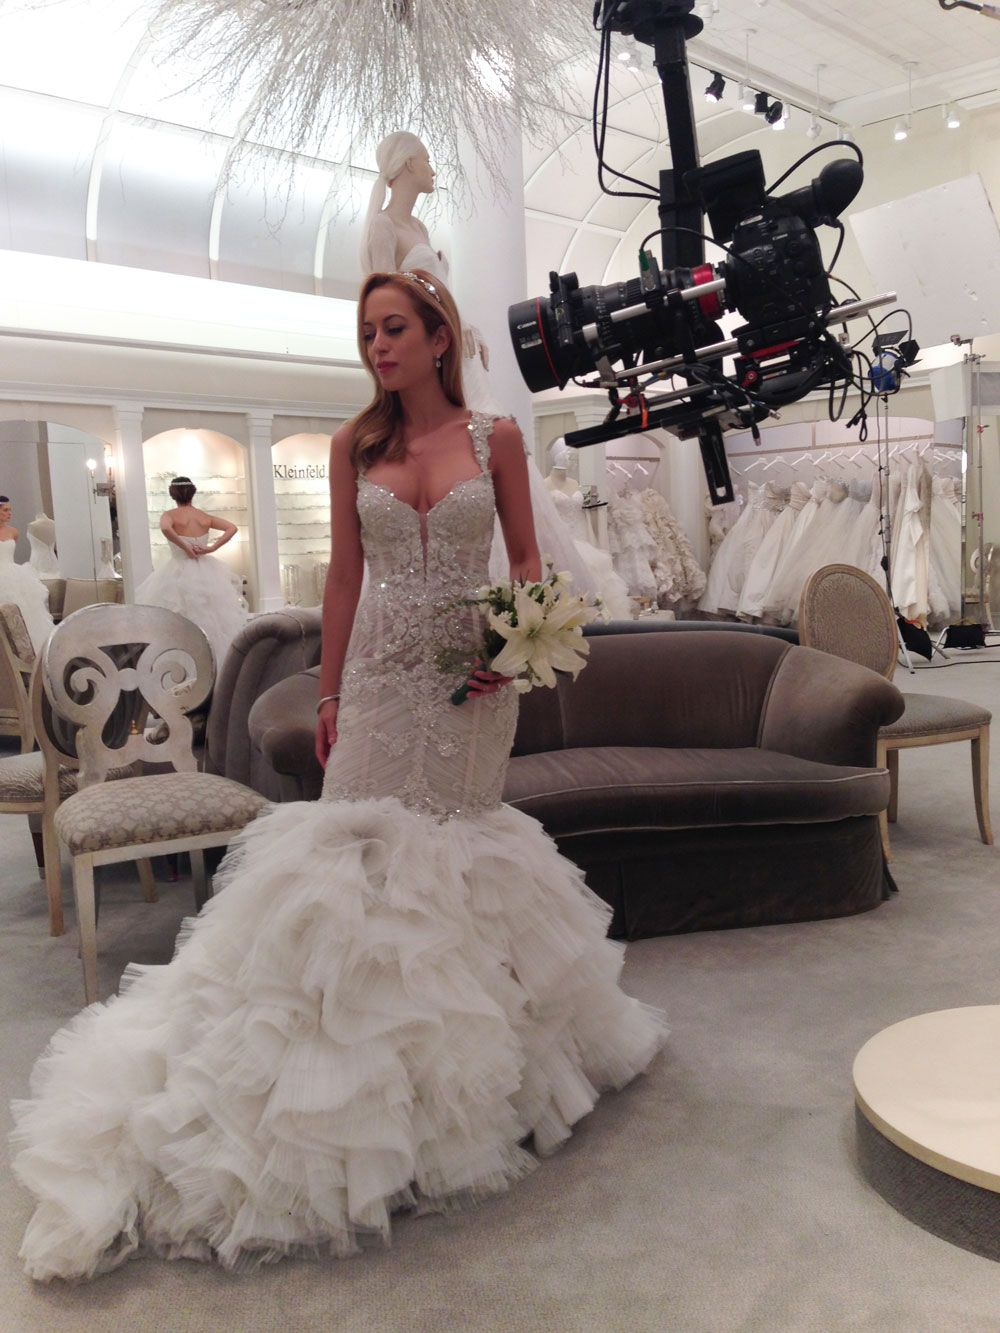 pnina tornai say yes to the dress - Google Search | Beautiful ...